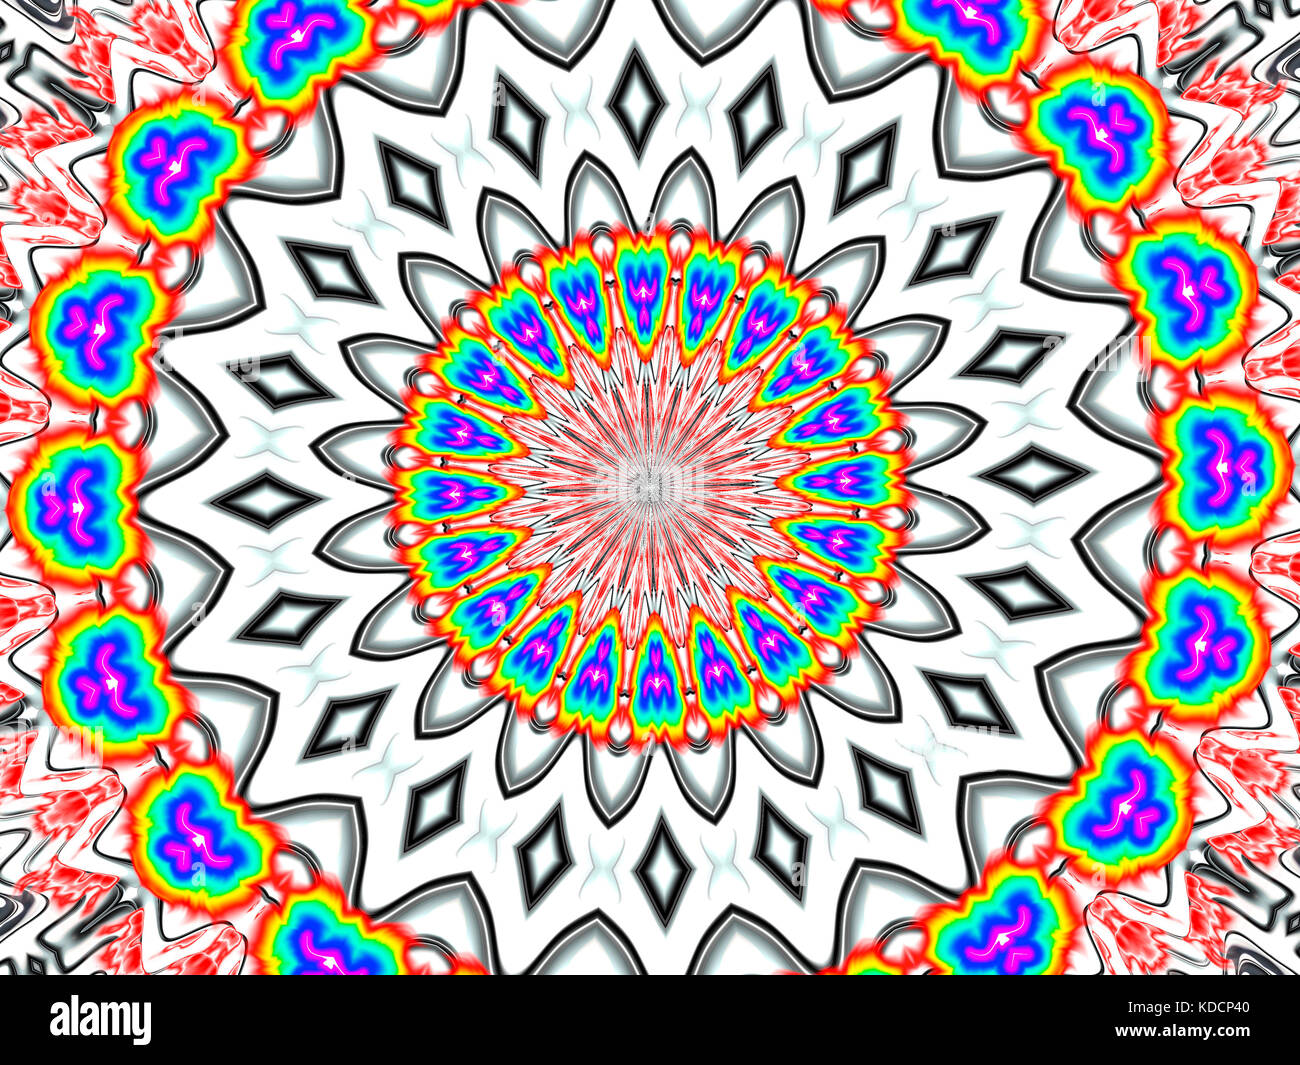 Psychedelic Silver Star - Stock Image